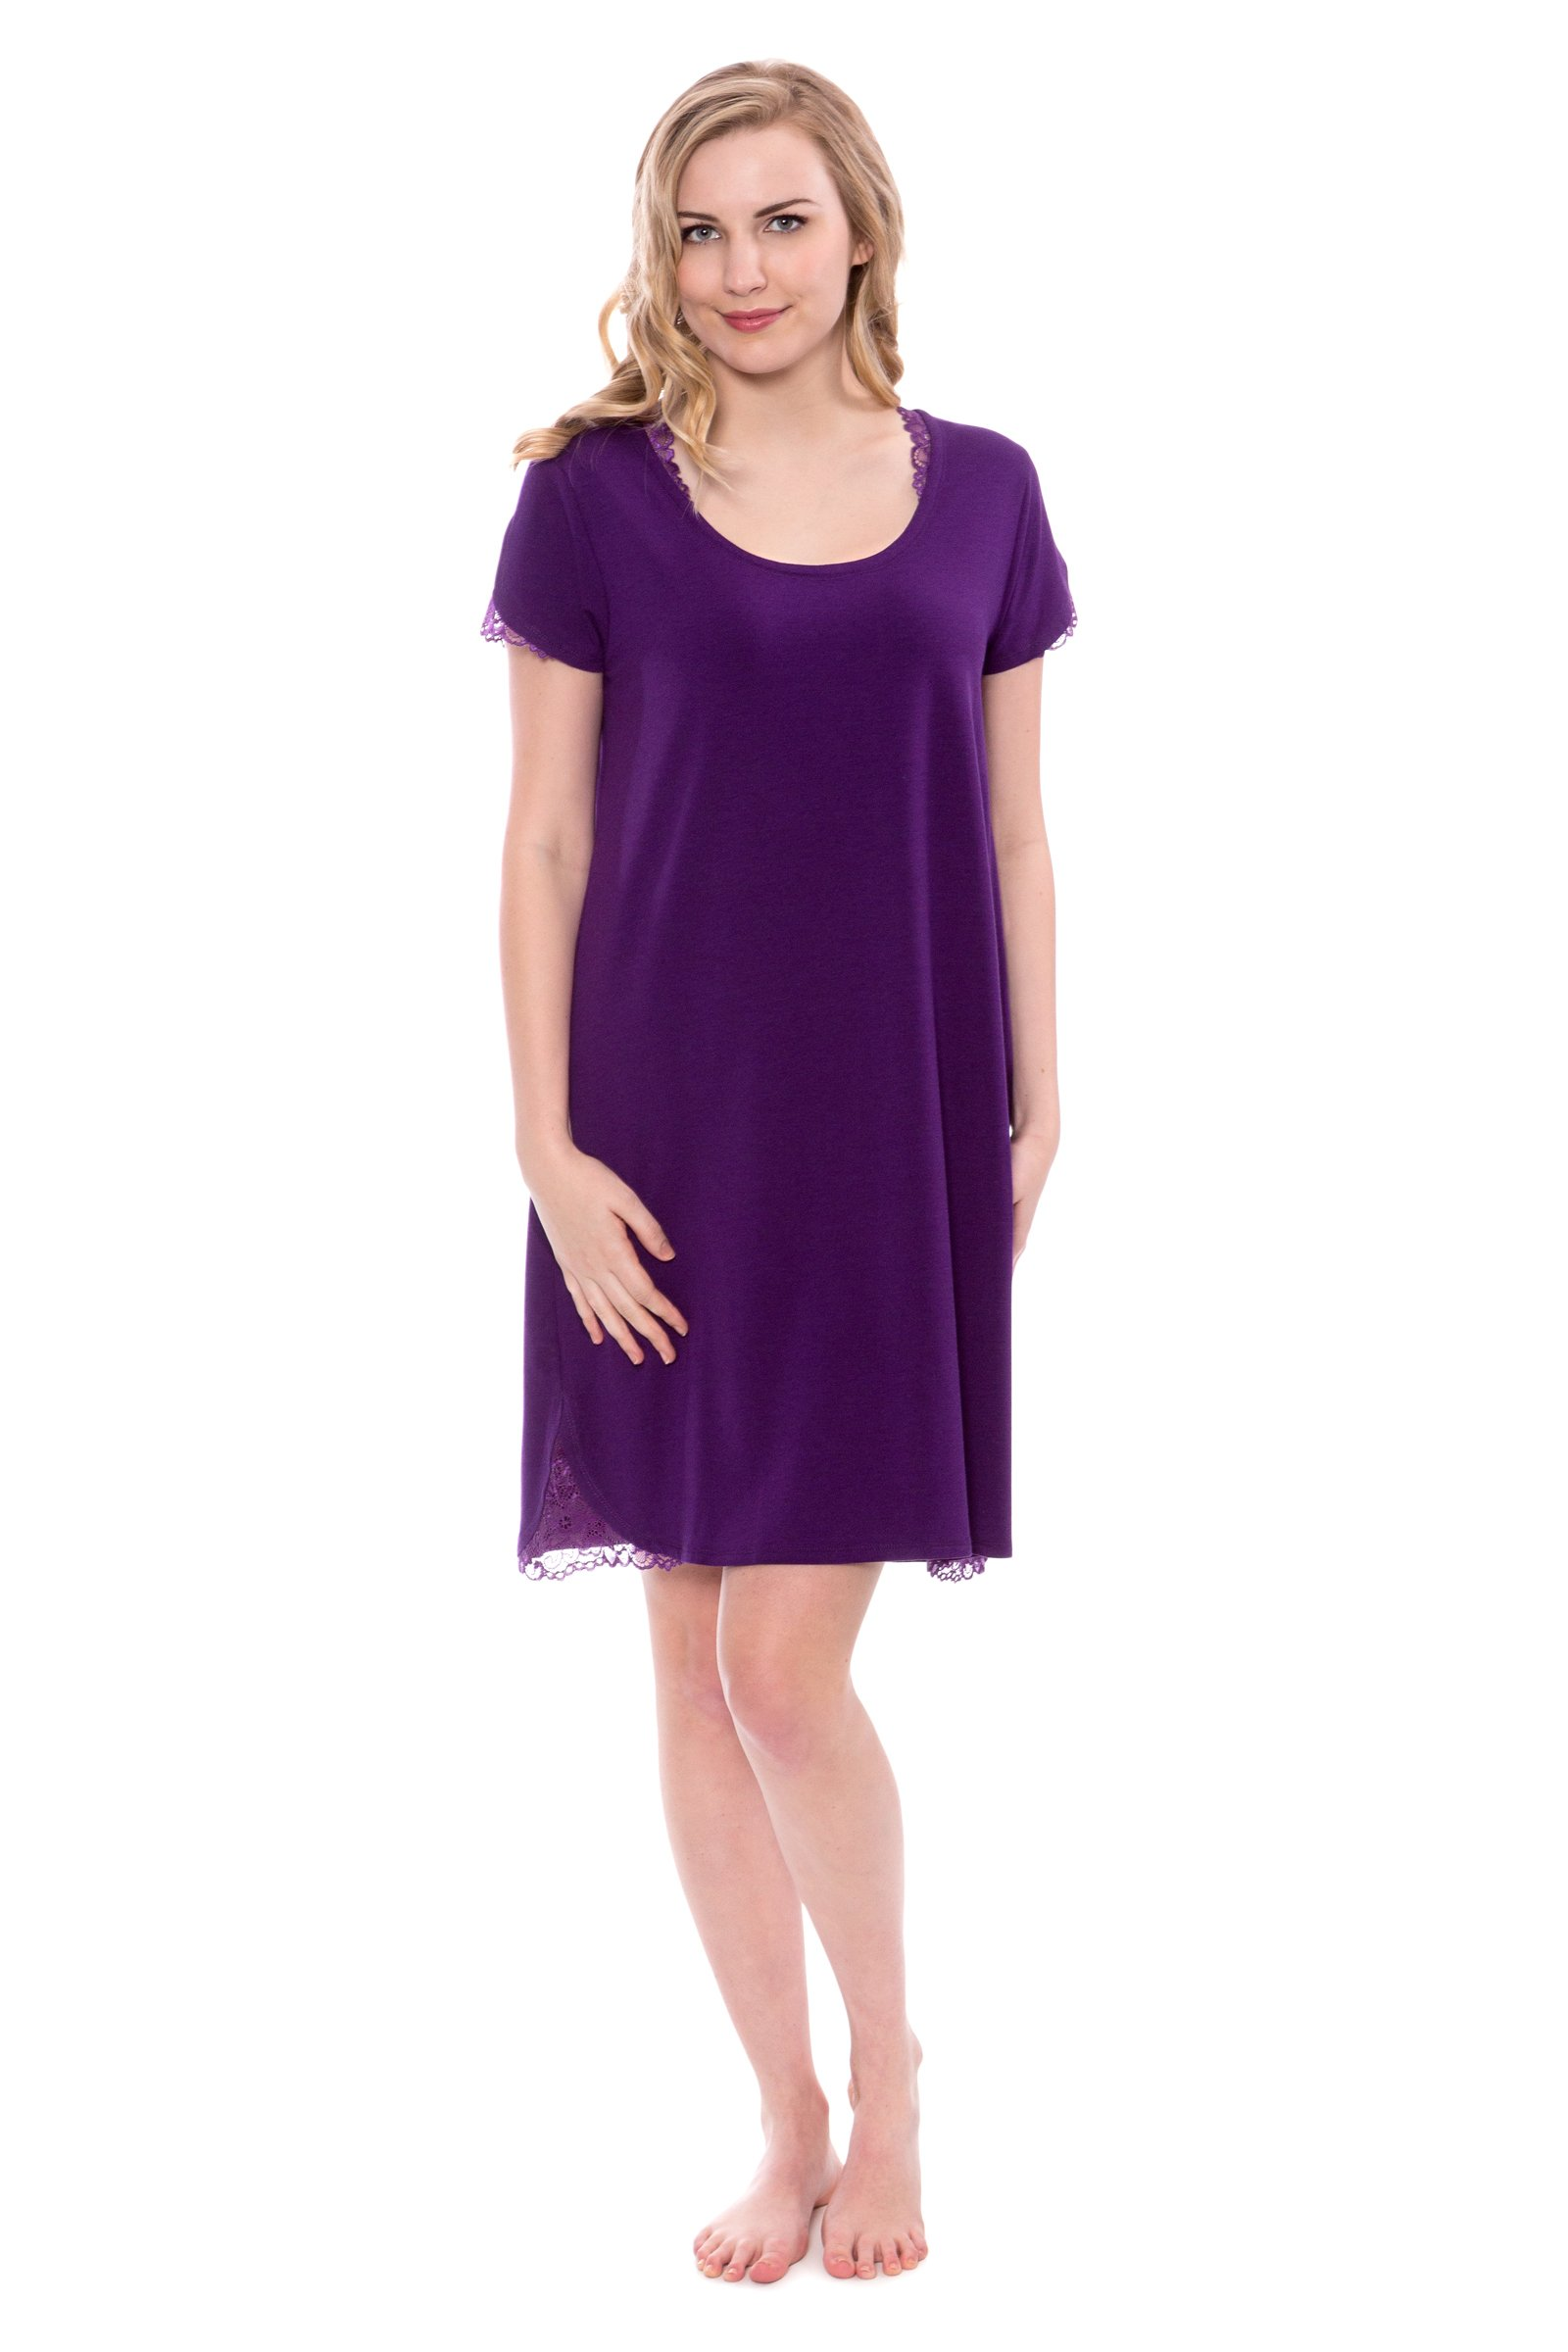 Women's Jersey Nightgown With Lace - Delicate Night Dress by Texere (Sonarina, Acai, Large) Unique Sleepwear Any Occasion Gifts For Every Woman TX-WB040-002-ACAI-R-L